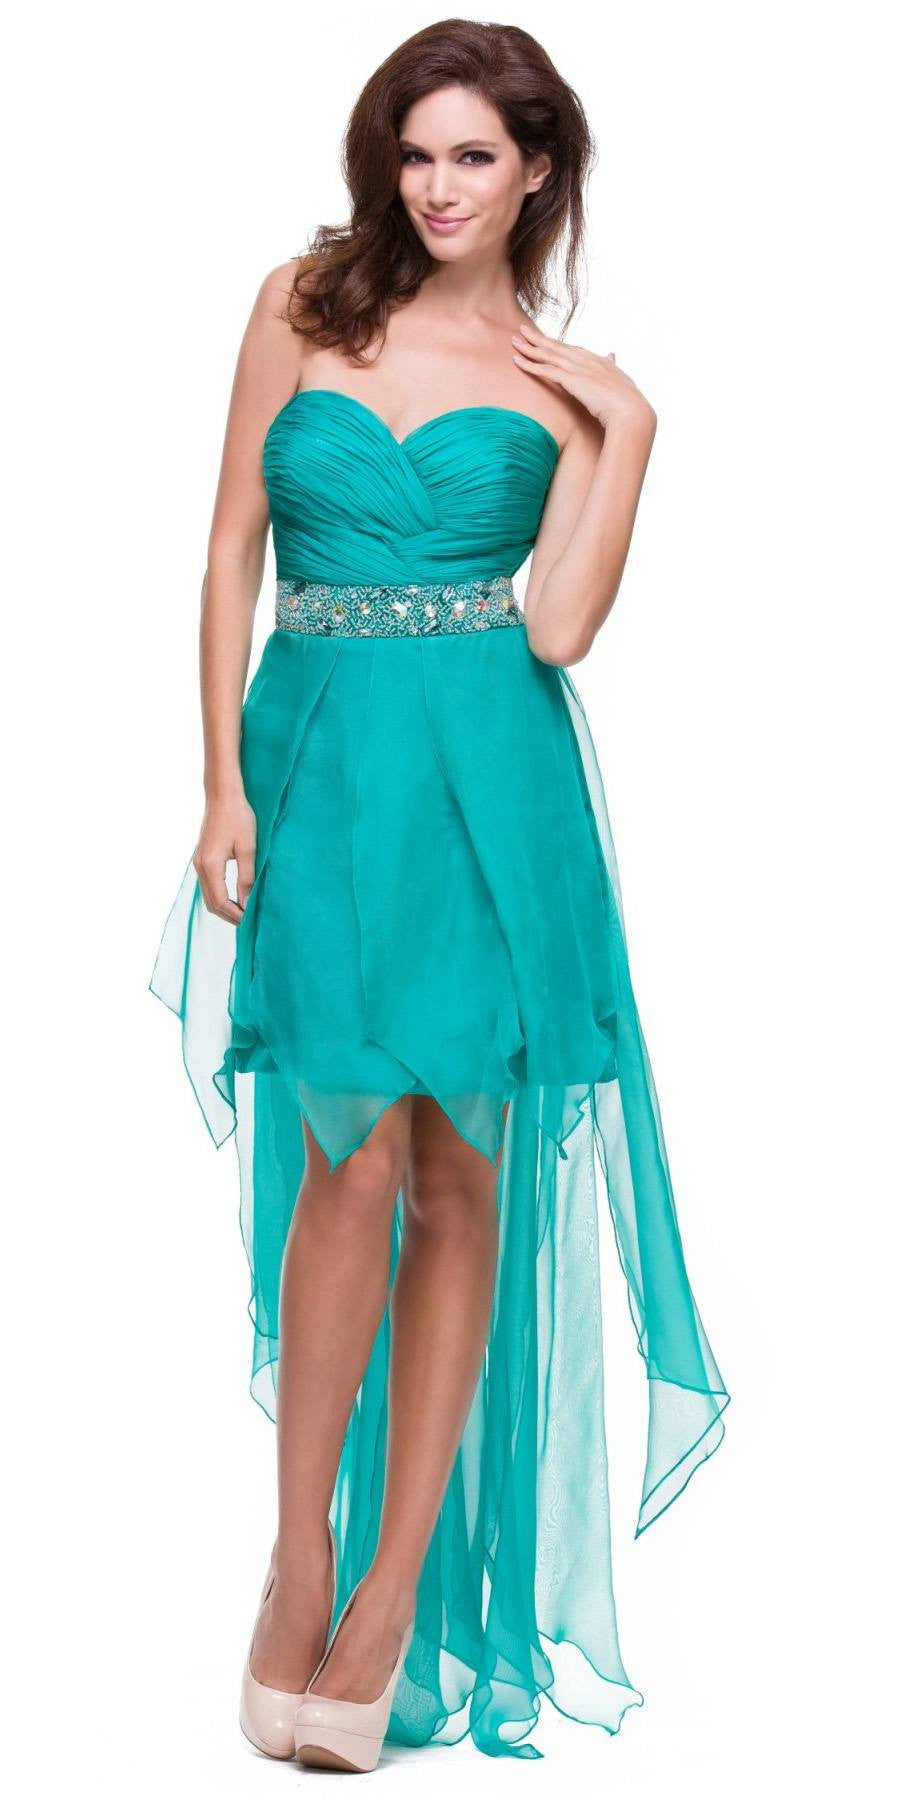 Teal Green High Low Dress Prom Lace Up Back Strapless Bead Waist ...